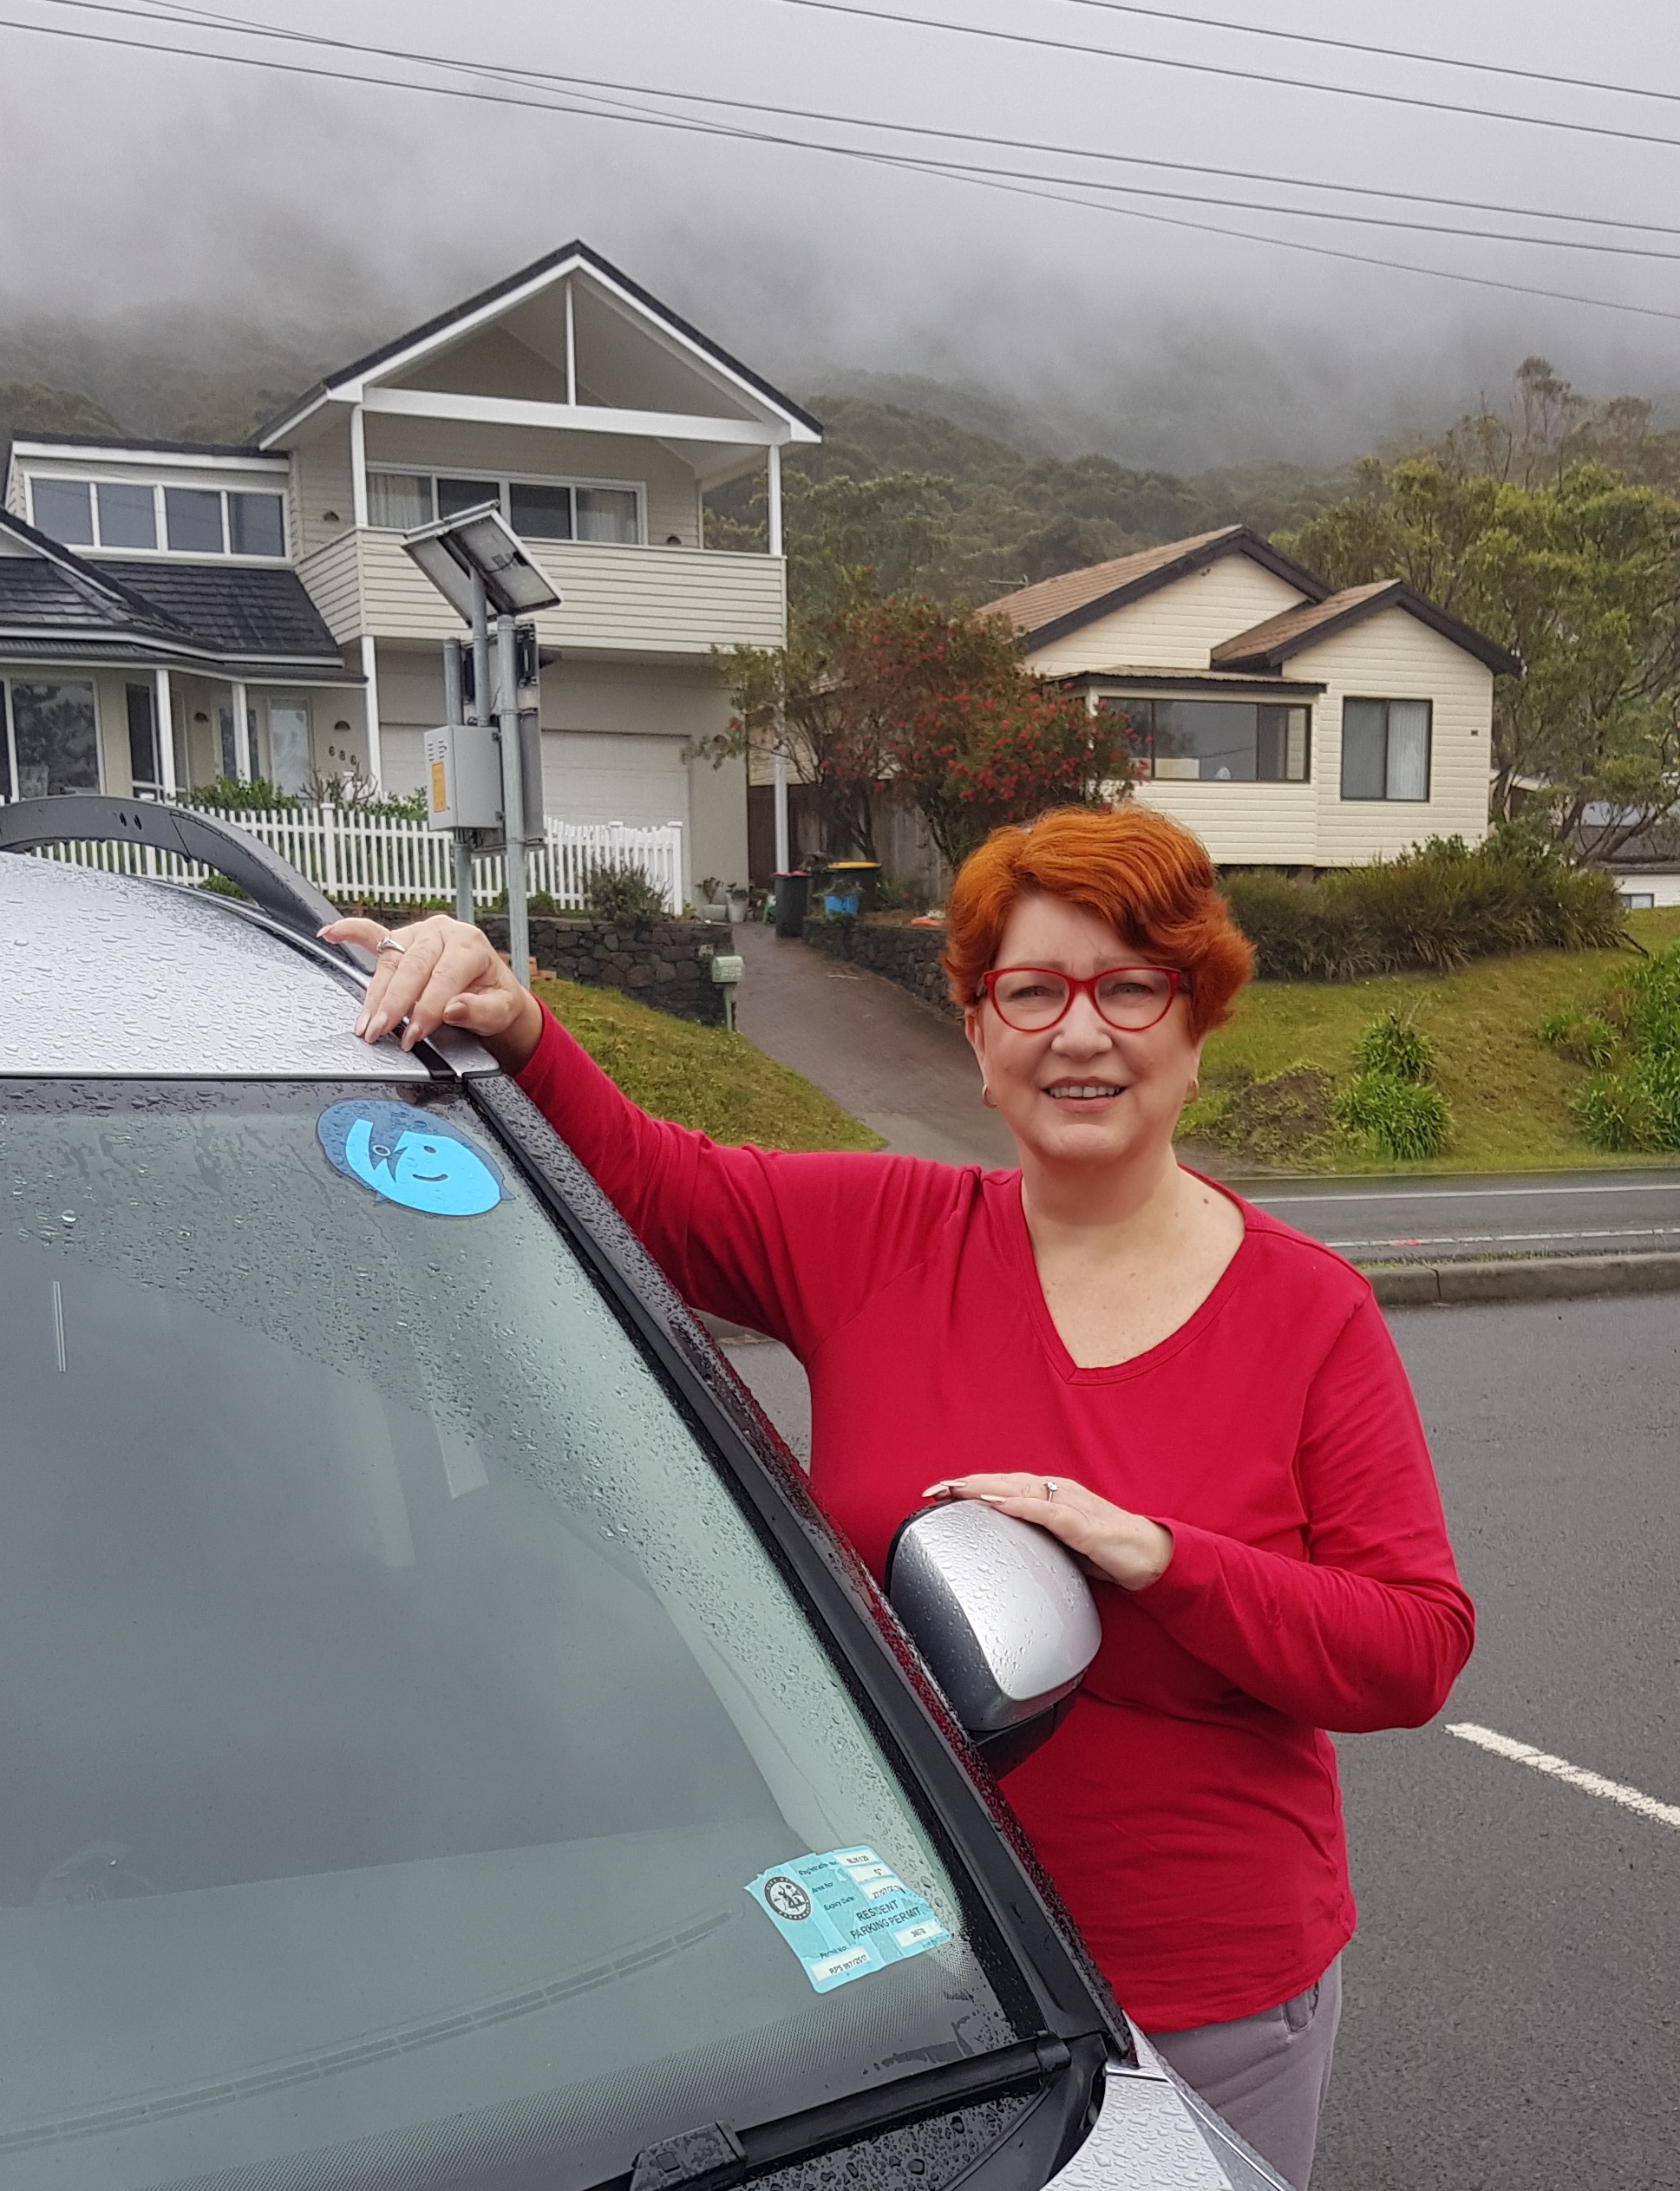 Unfamiliar cars and pouring rain: the joys and challenges of borrowing your neighbour's car